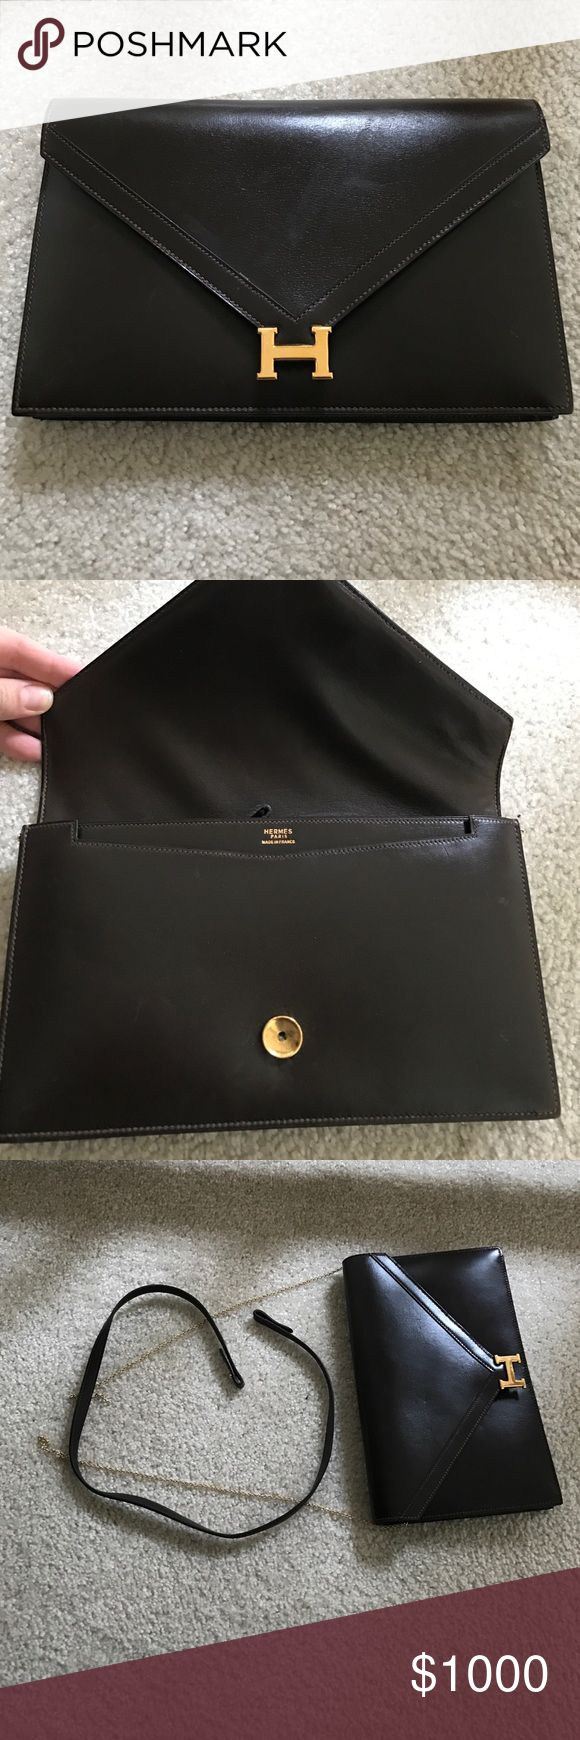 Vintage Hermes clutch Vintage Hermes brown clutch. Strap needs to be reattached, and H clasp doesn't clip in, great bag!!! Rare Lydie style 100% authentic with one zip compartment. Willing to negotiate to sell. Selling for $3000 plus on other sites, so priced low. Can be repaired Hermes Bags